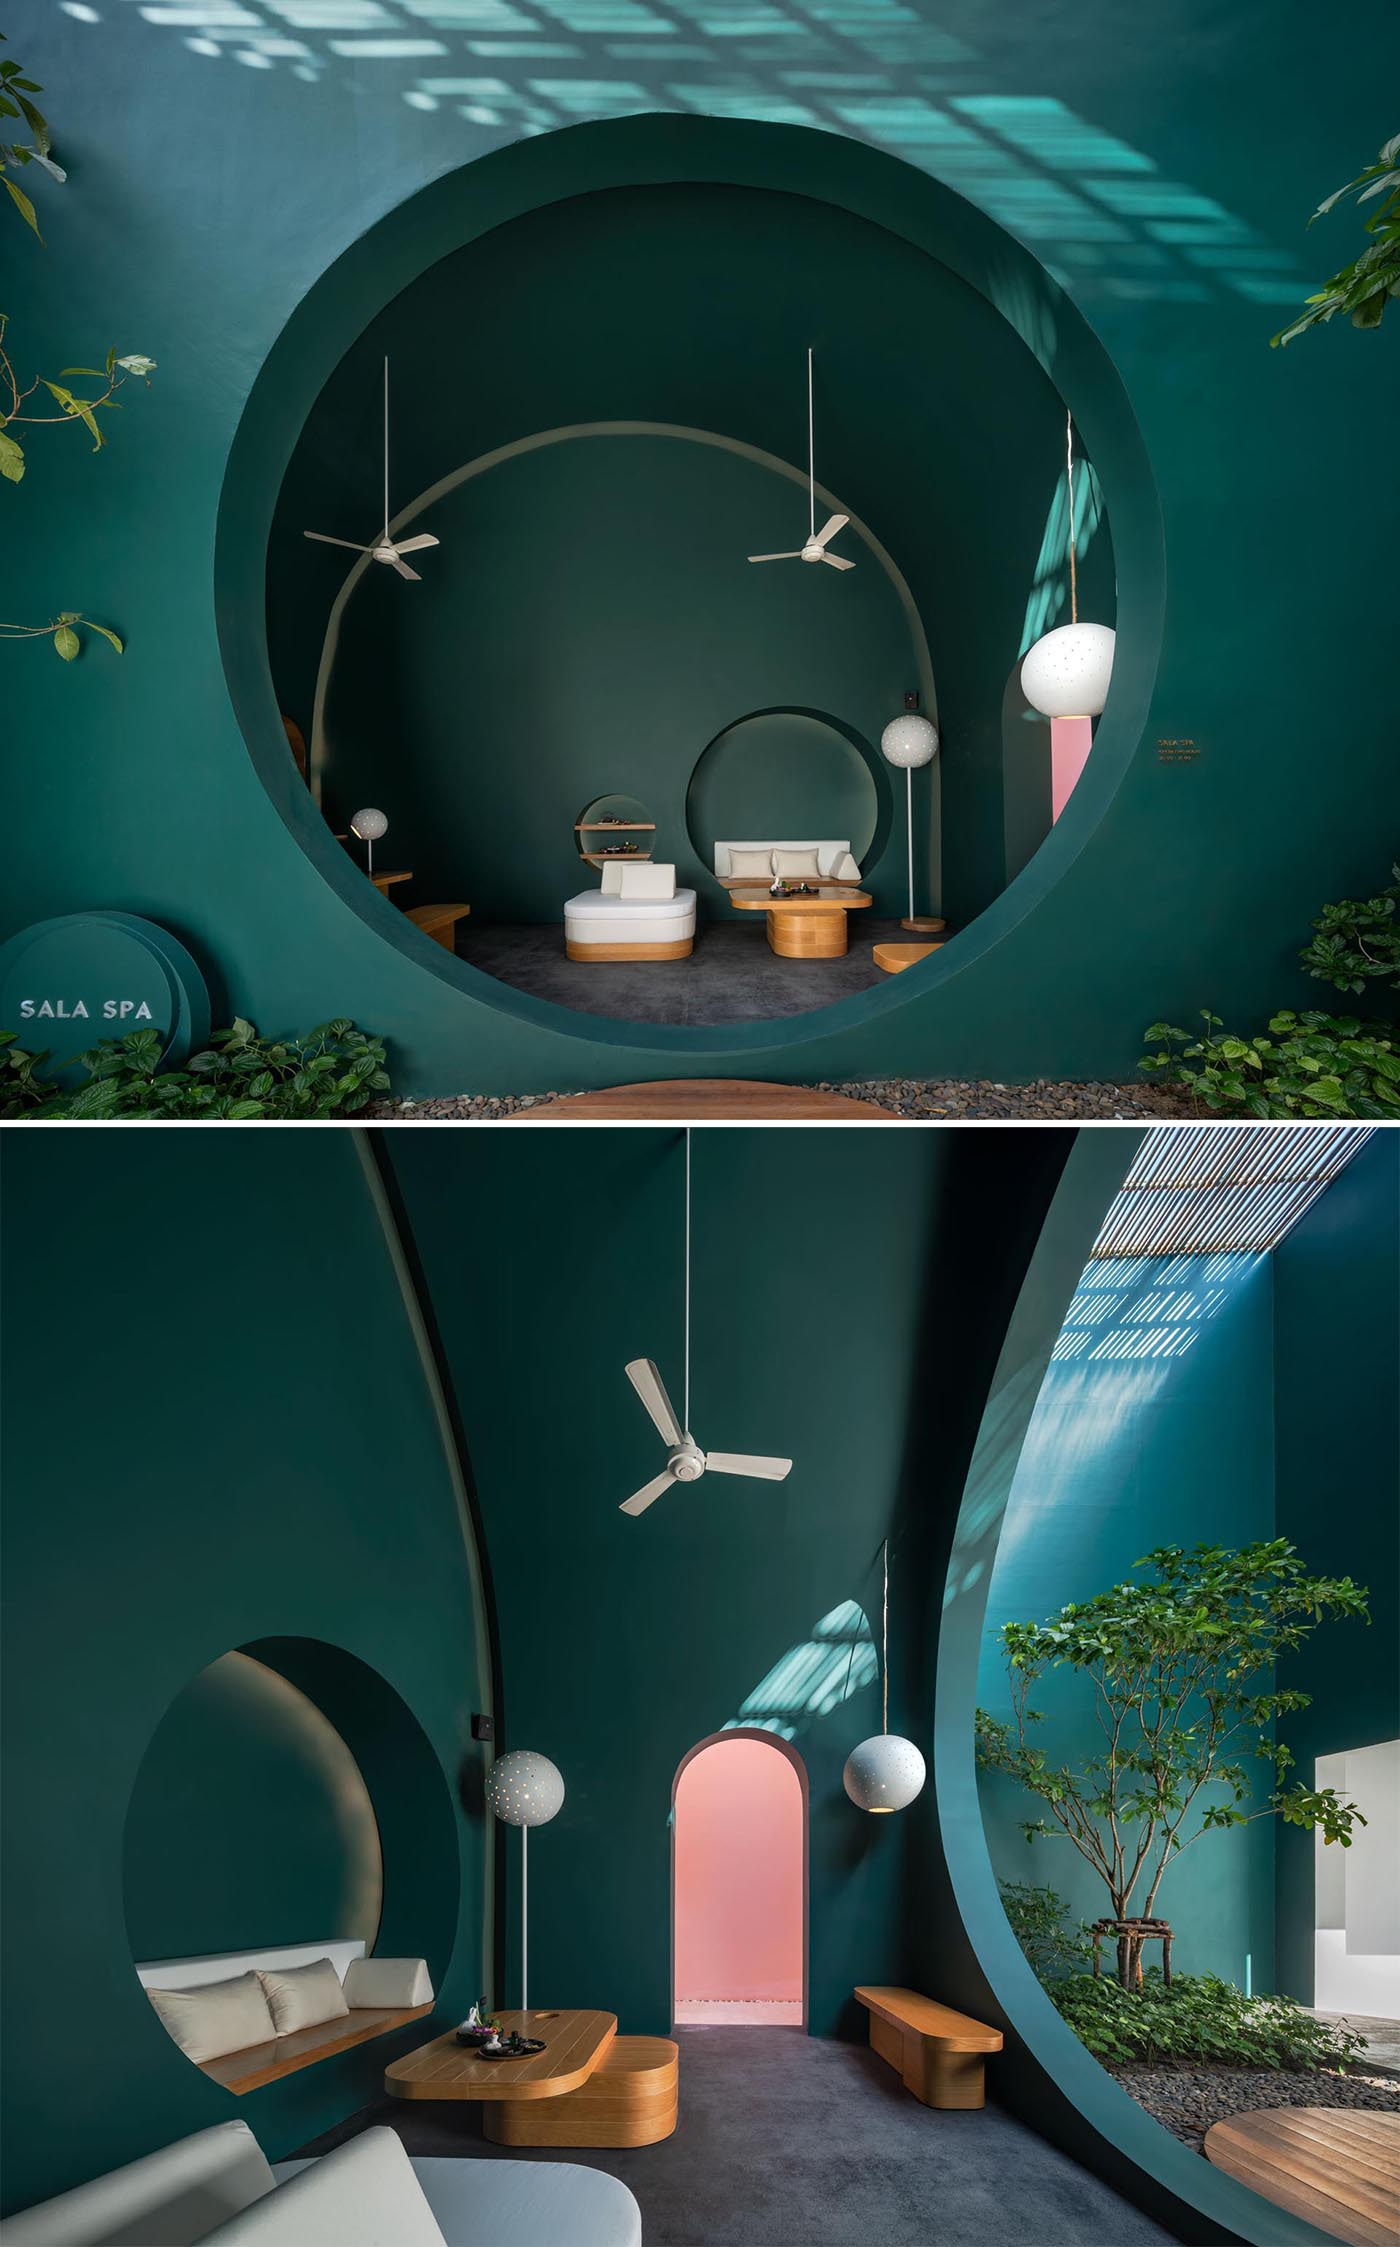 Dark green walls and a built-in seat in a modern hotel spa.